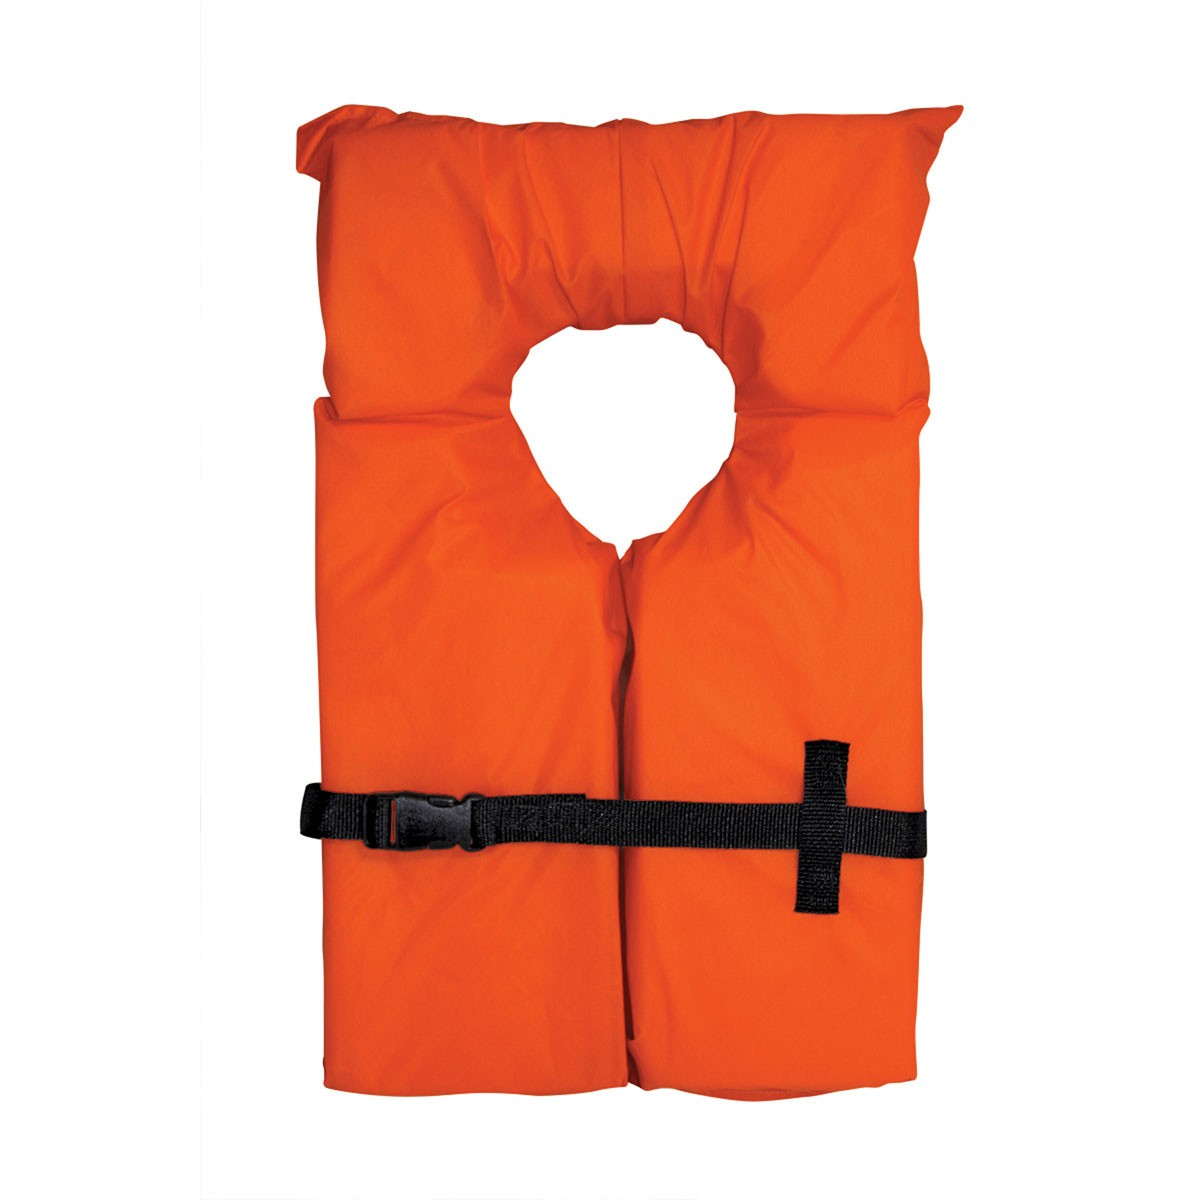 Airhead Type II Keyhole Youth Nylon Life Vest Orange